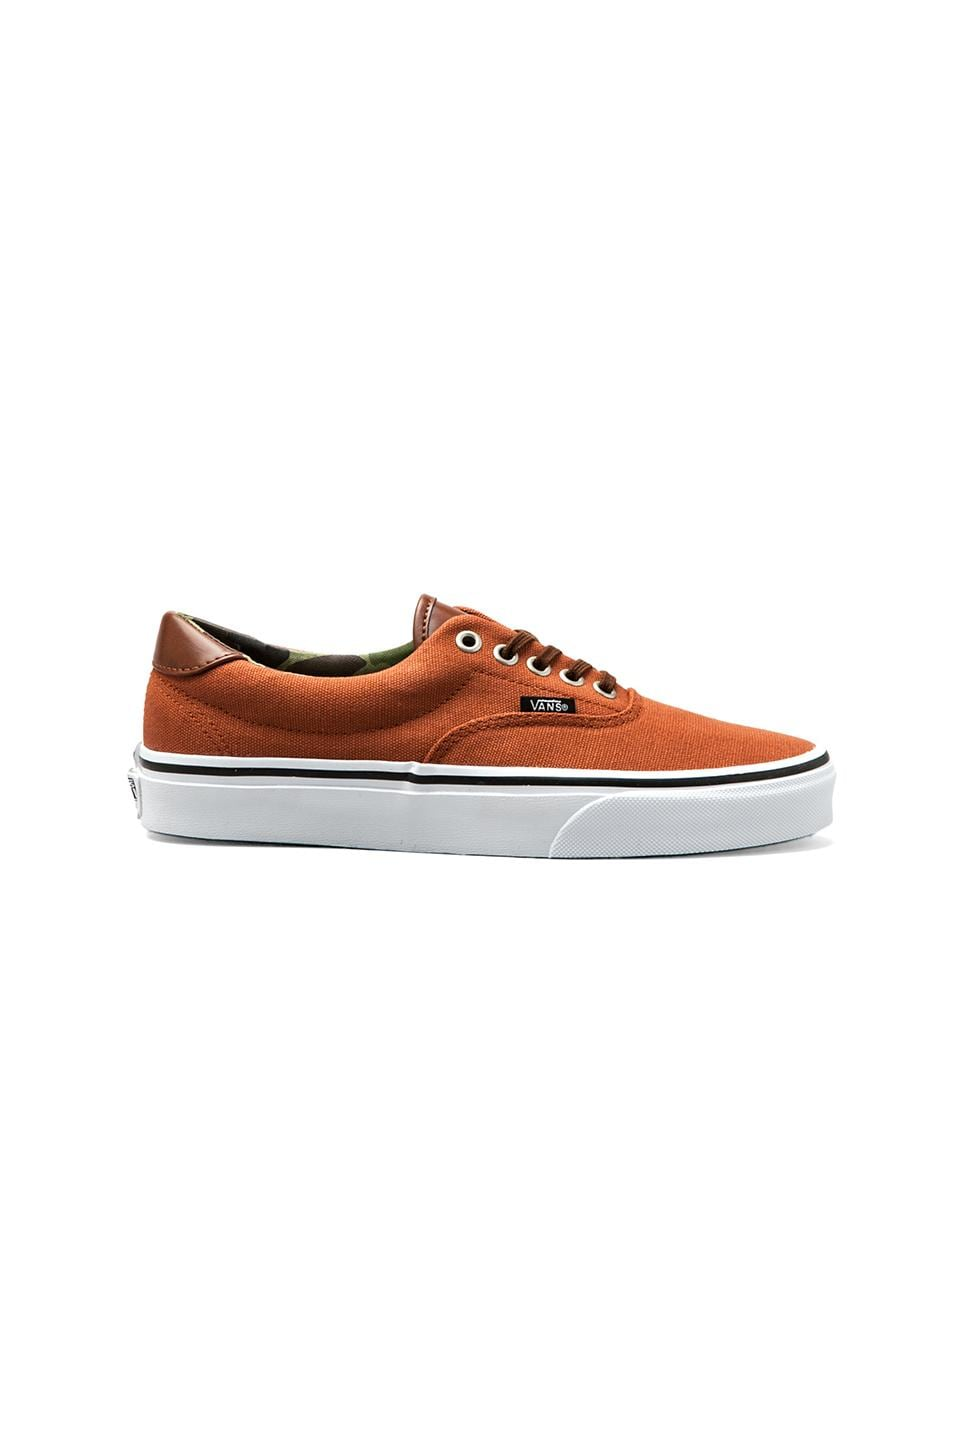 Vans Era 59 in Ginger Bread/Camo